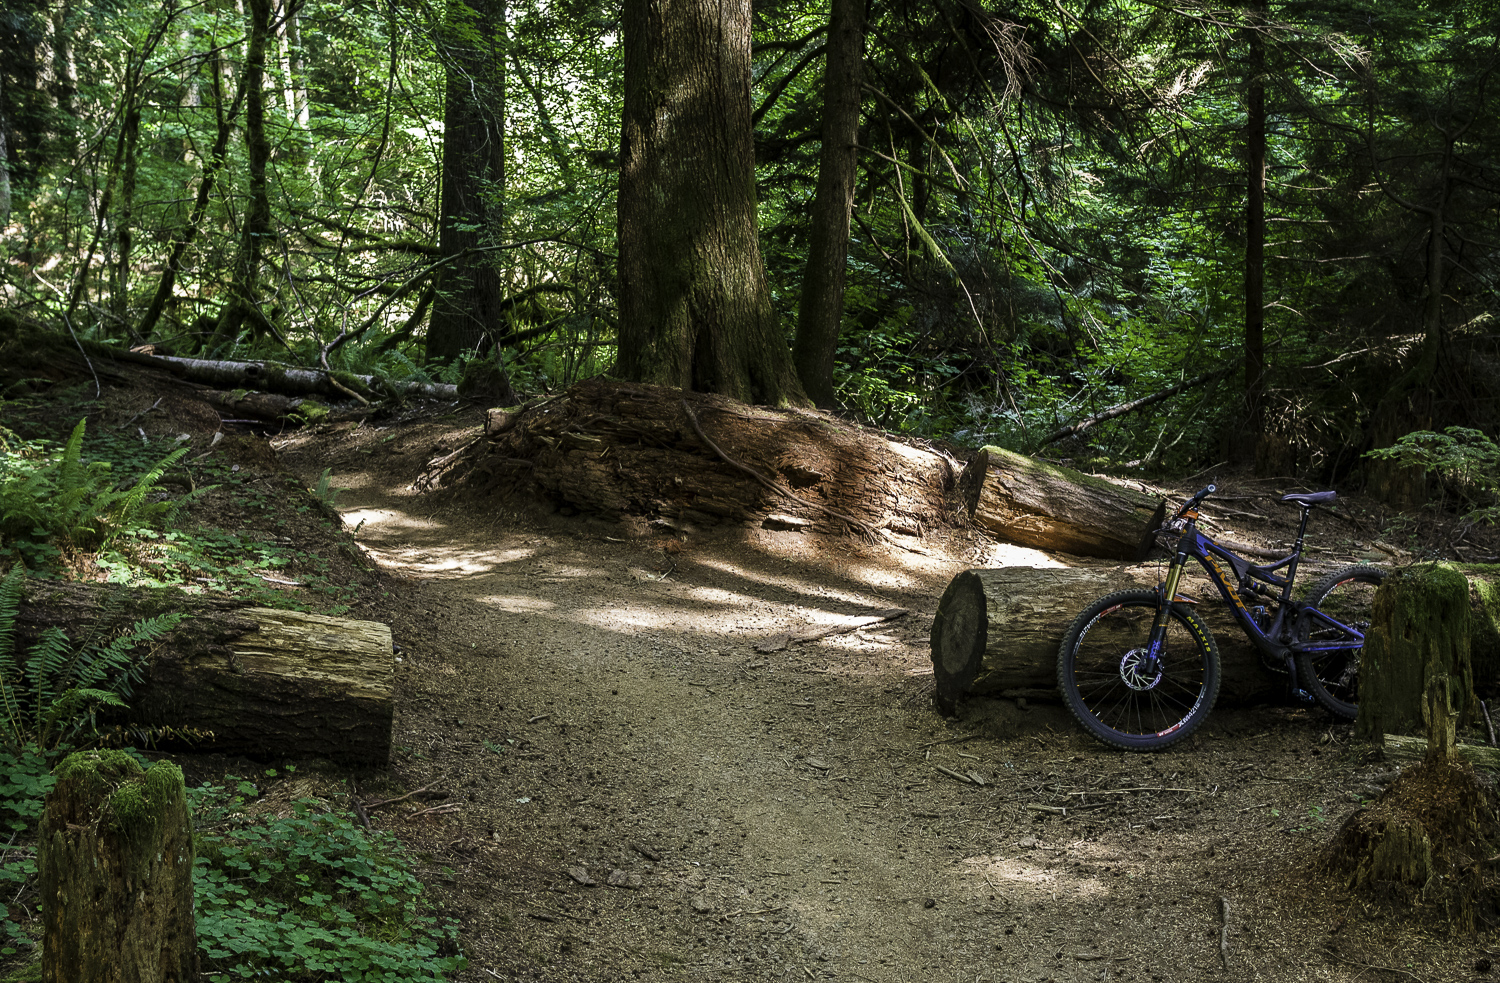 Quid Pro Flow Trail - Sandy Ridge, OR